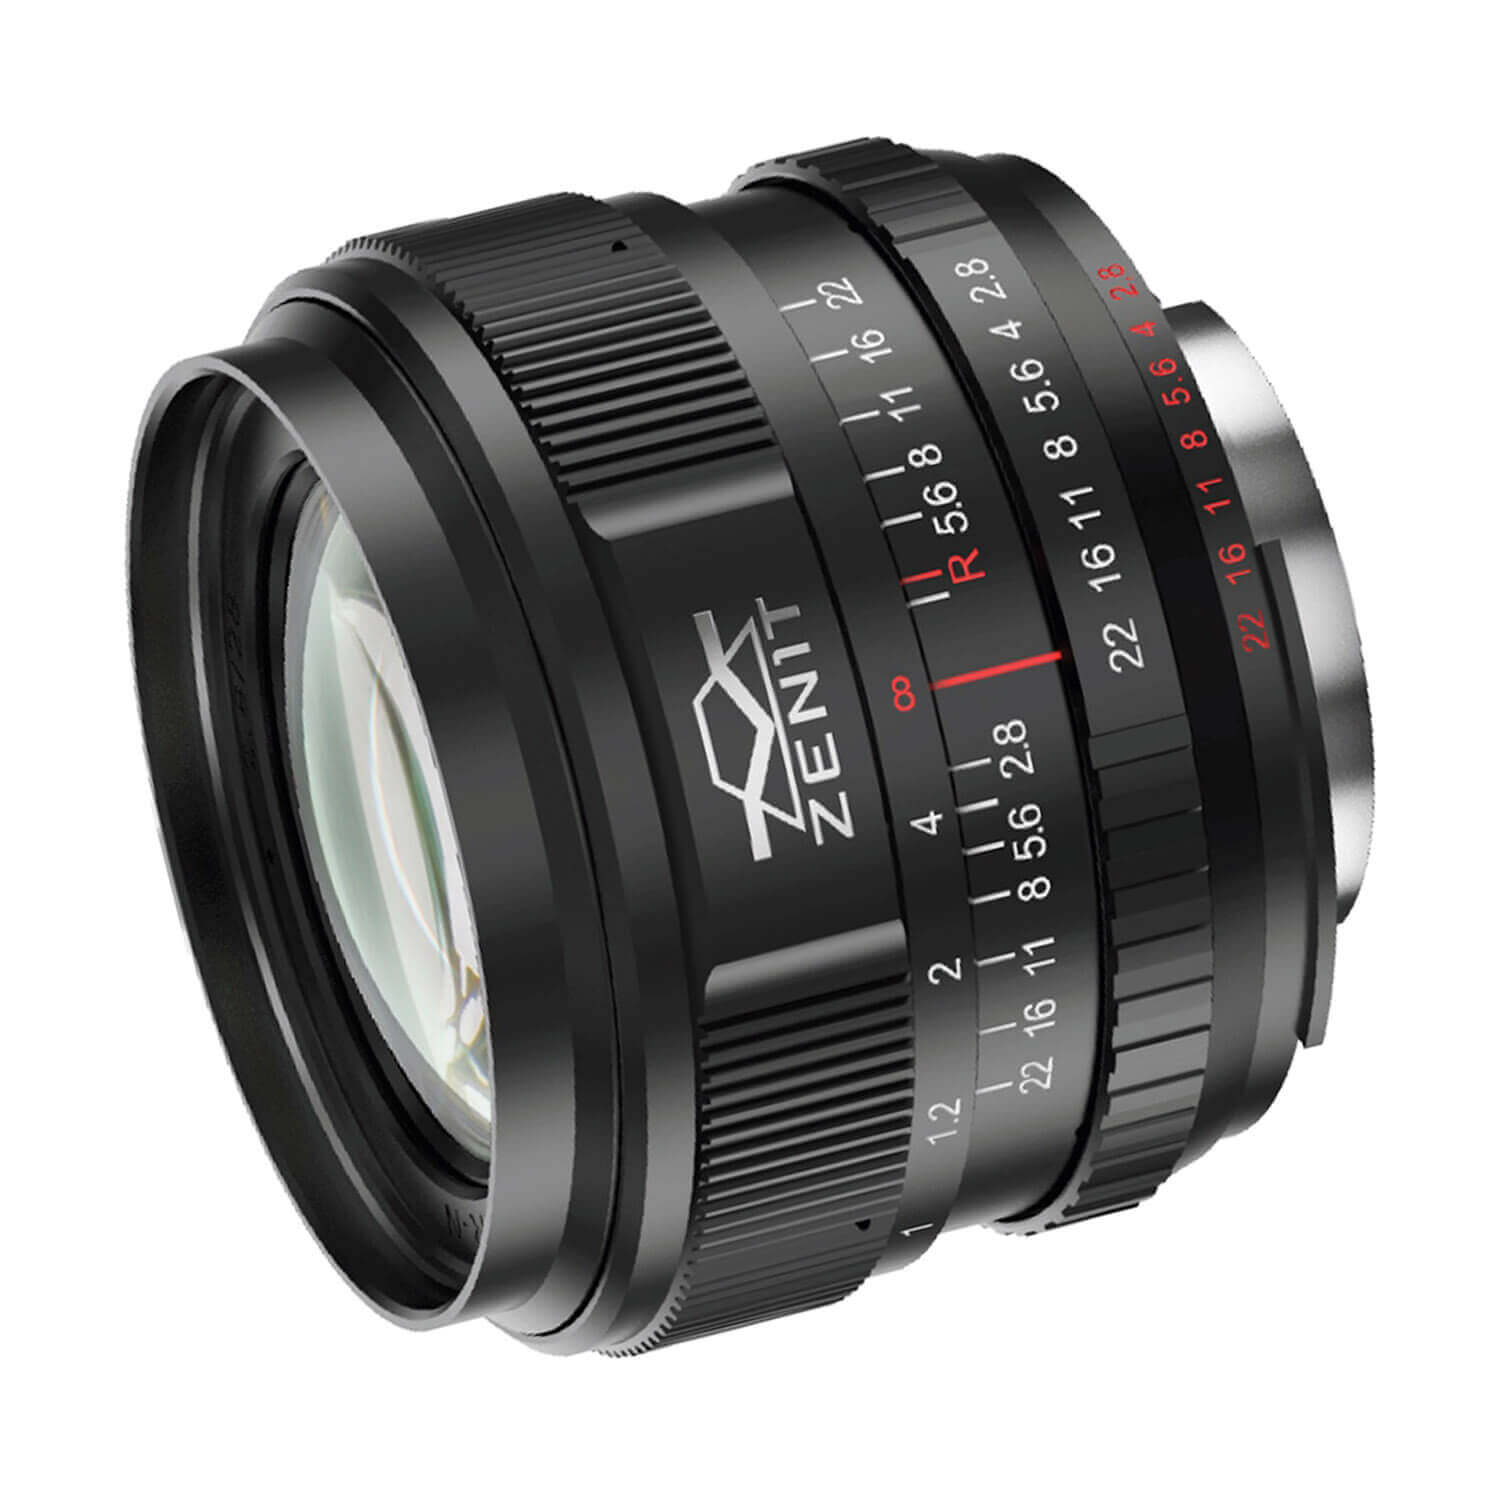 New wide-angle lenses